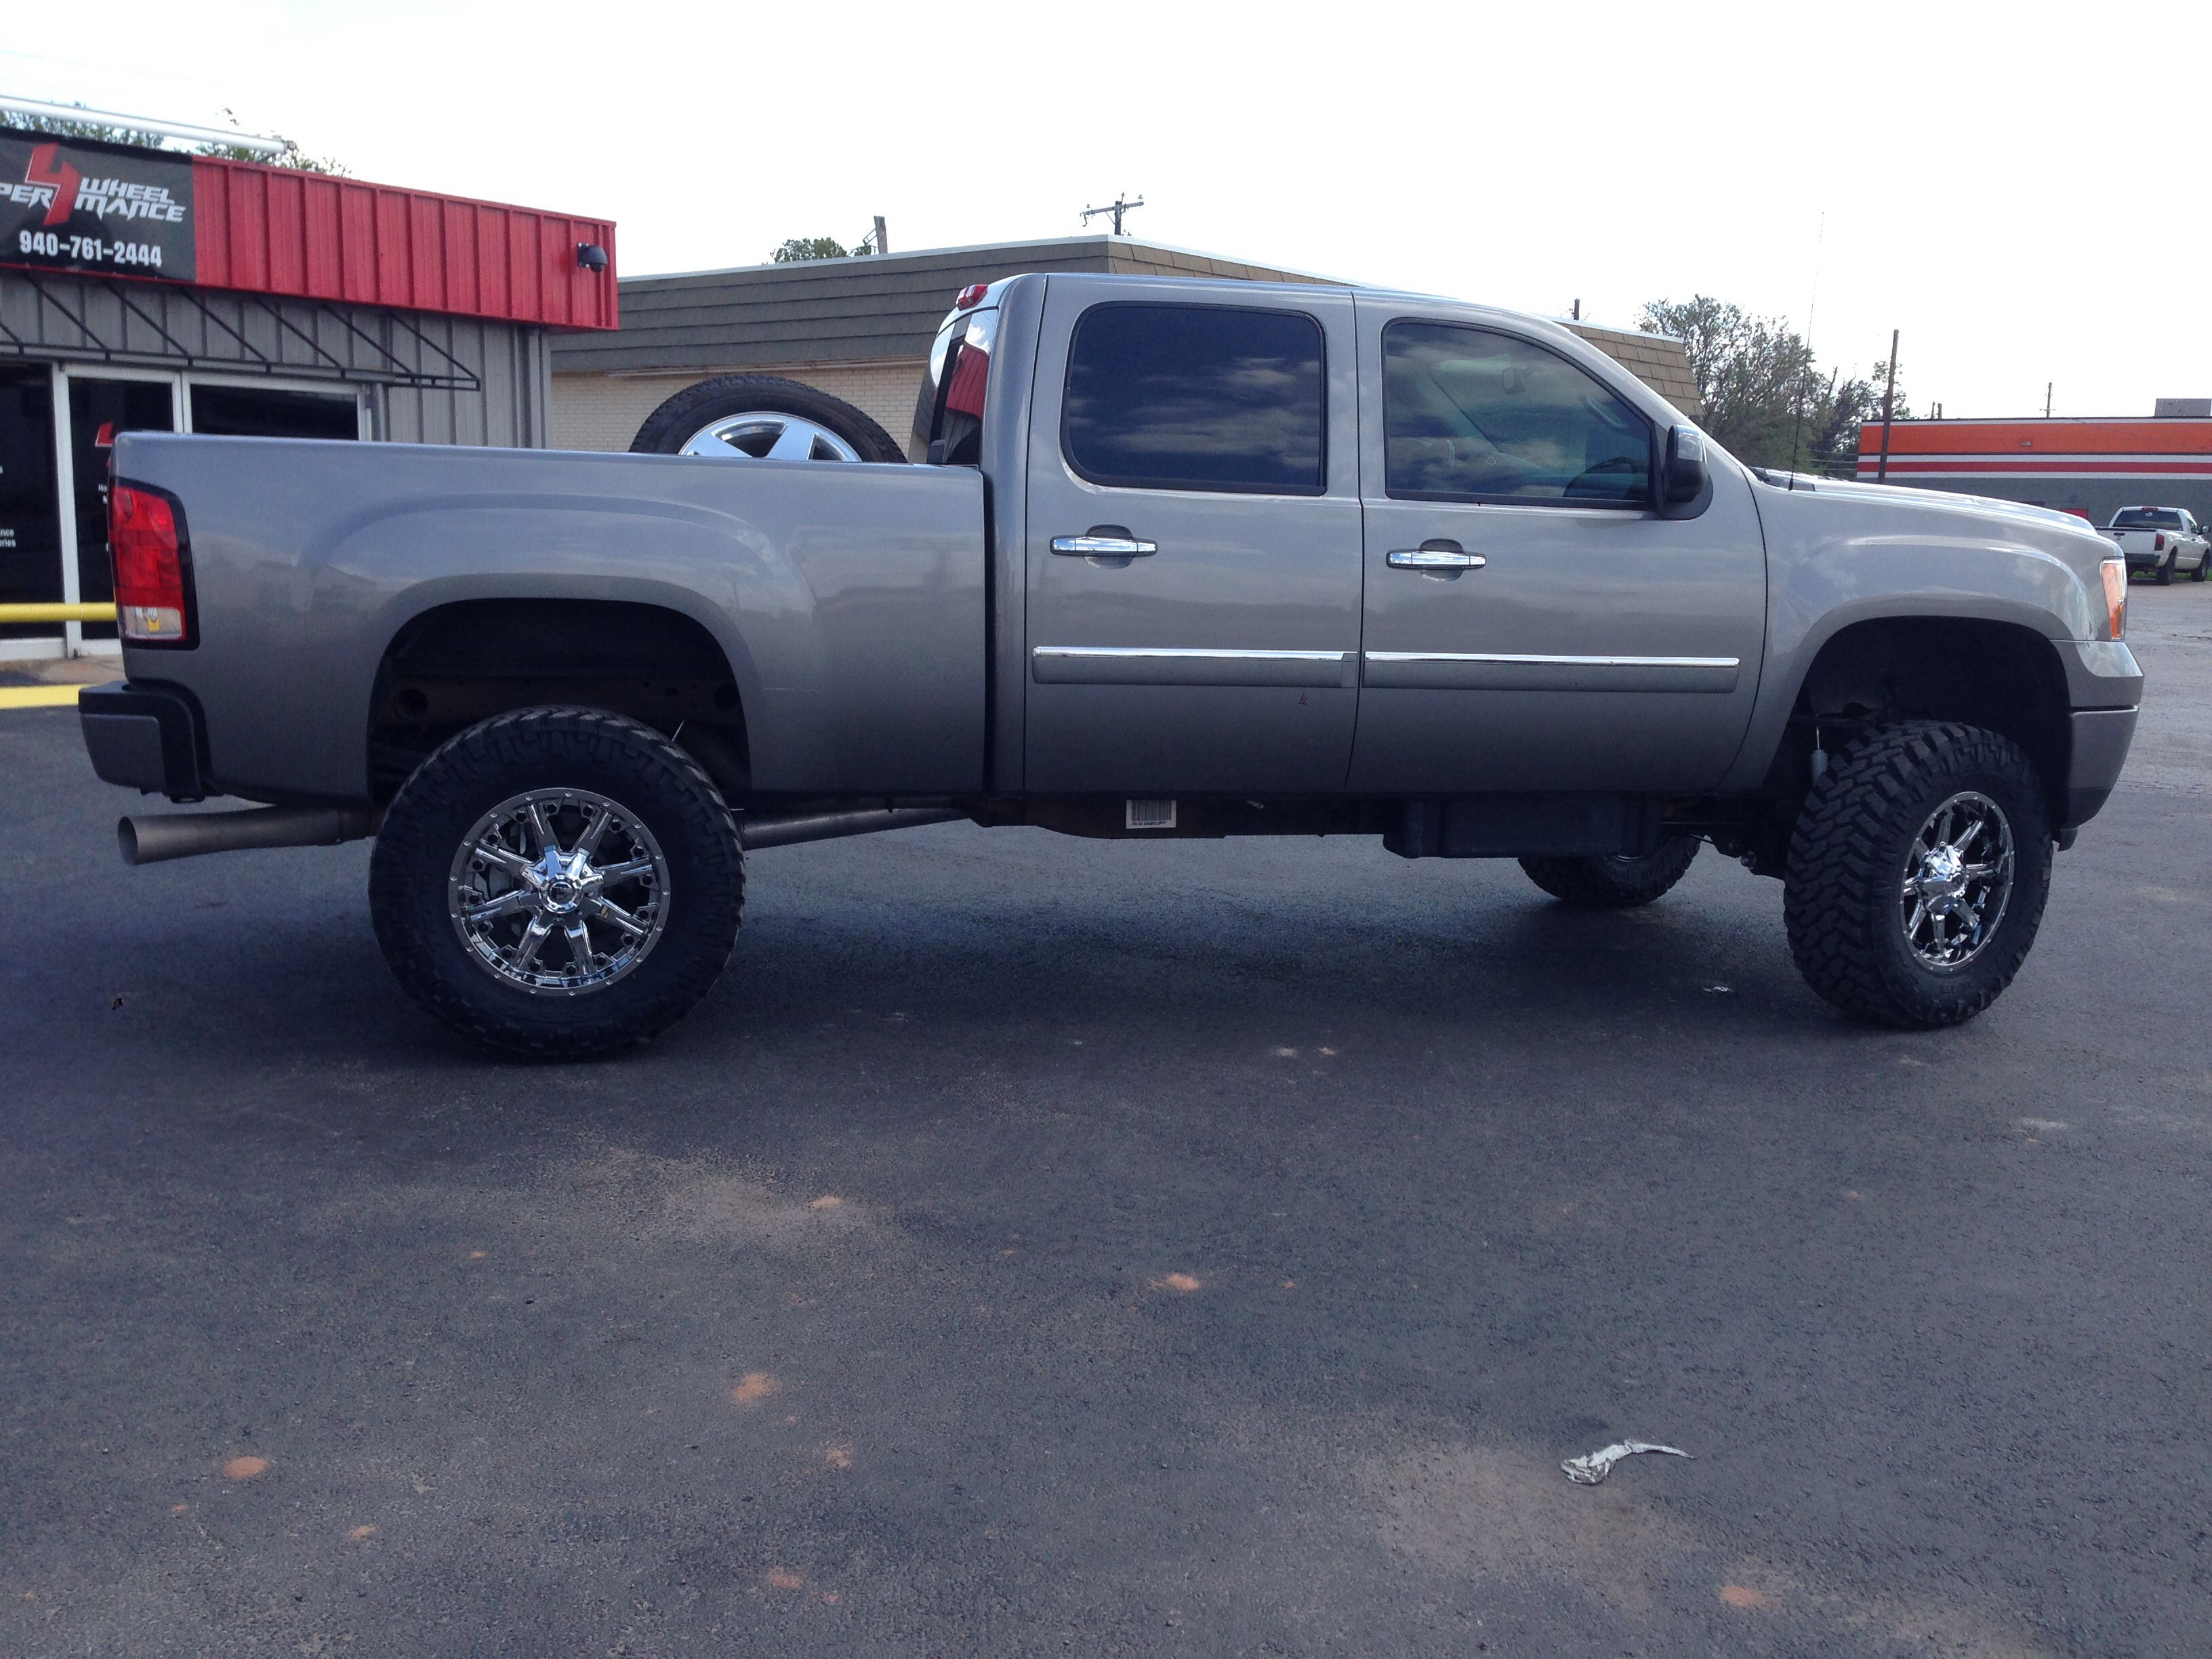 2013 Gmc Sierra 2500 Hd 6 5 Bds Lift 20 Fuel Wheels 37x12 50r20